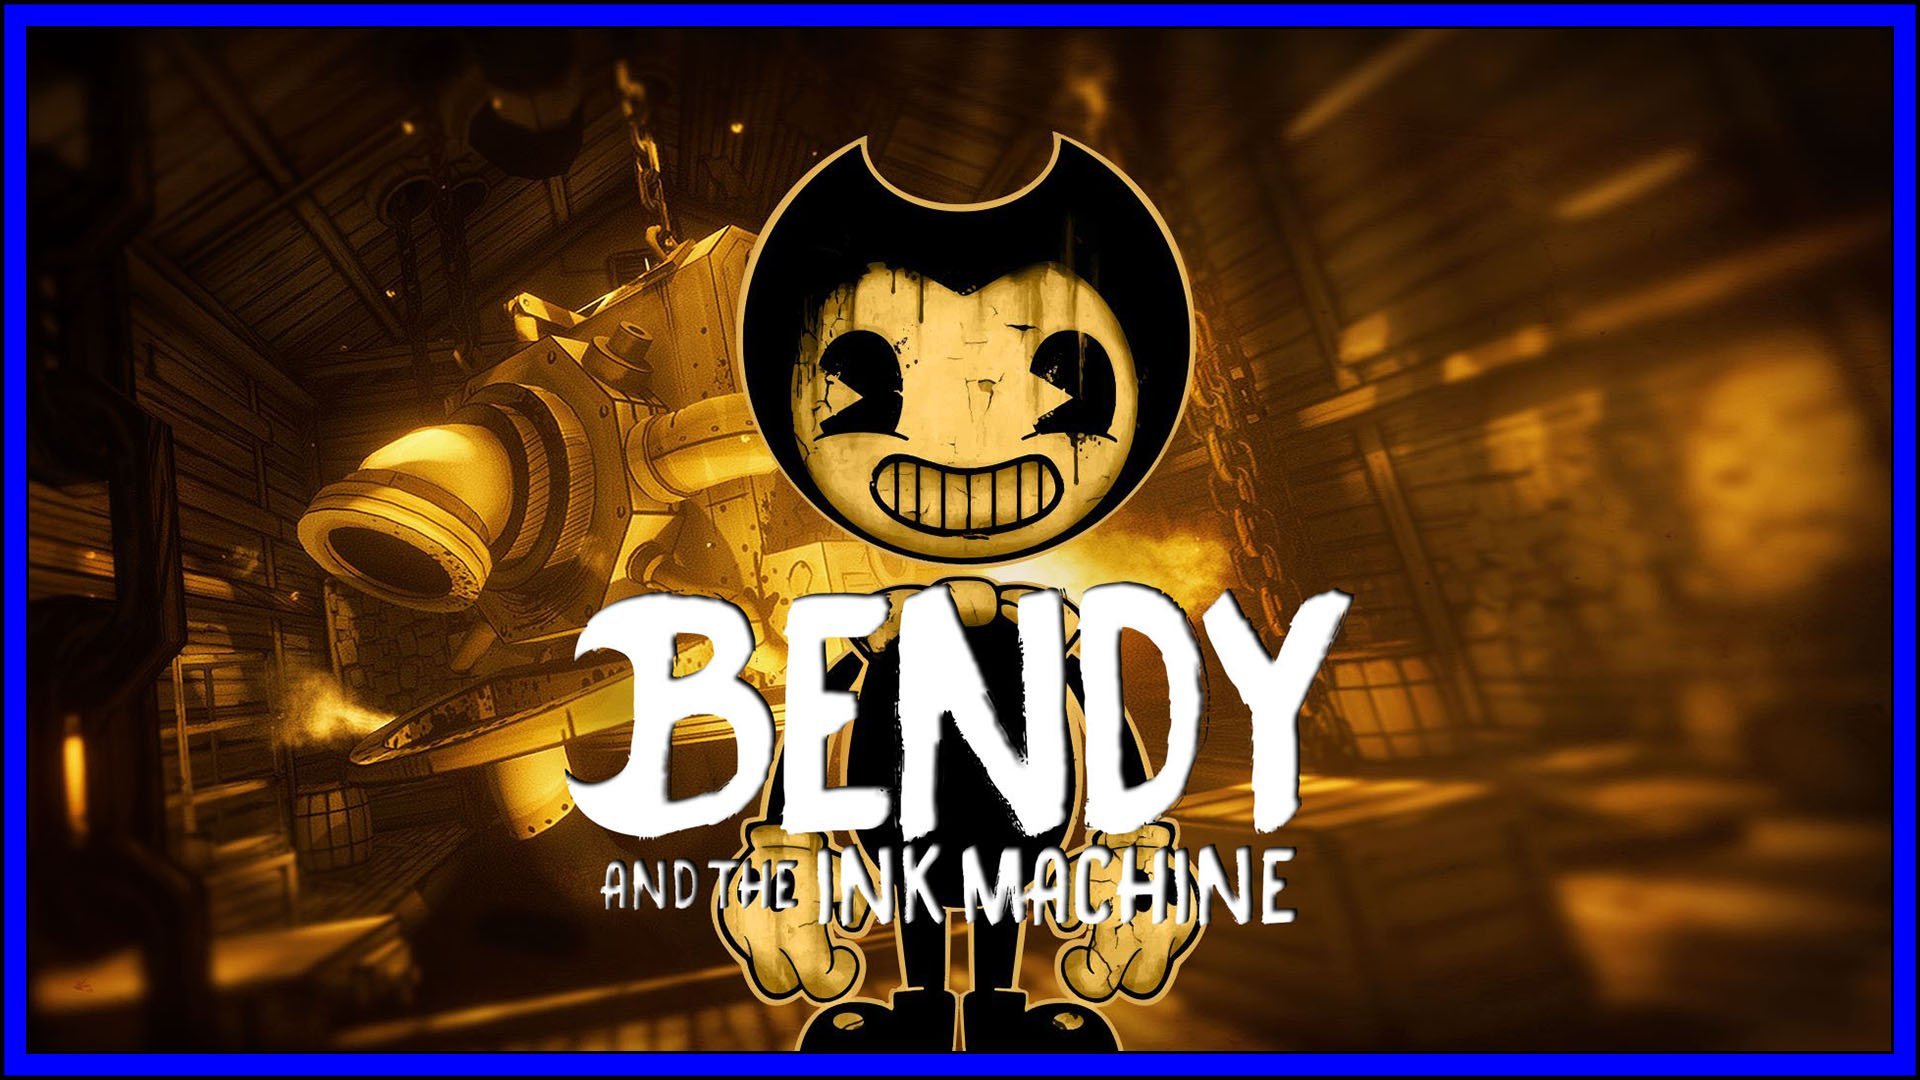 Bendy And The Ink Machine Fi3